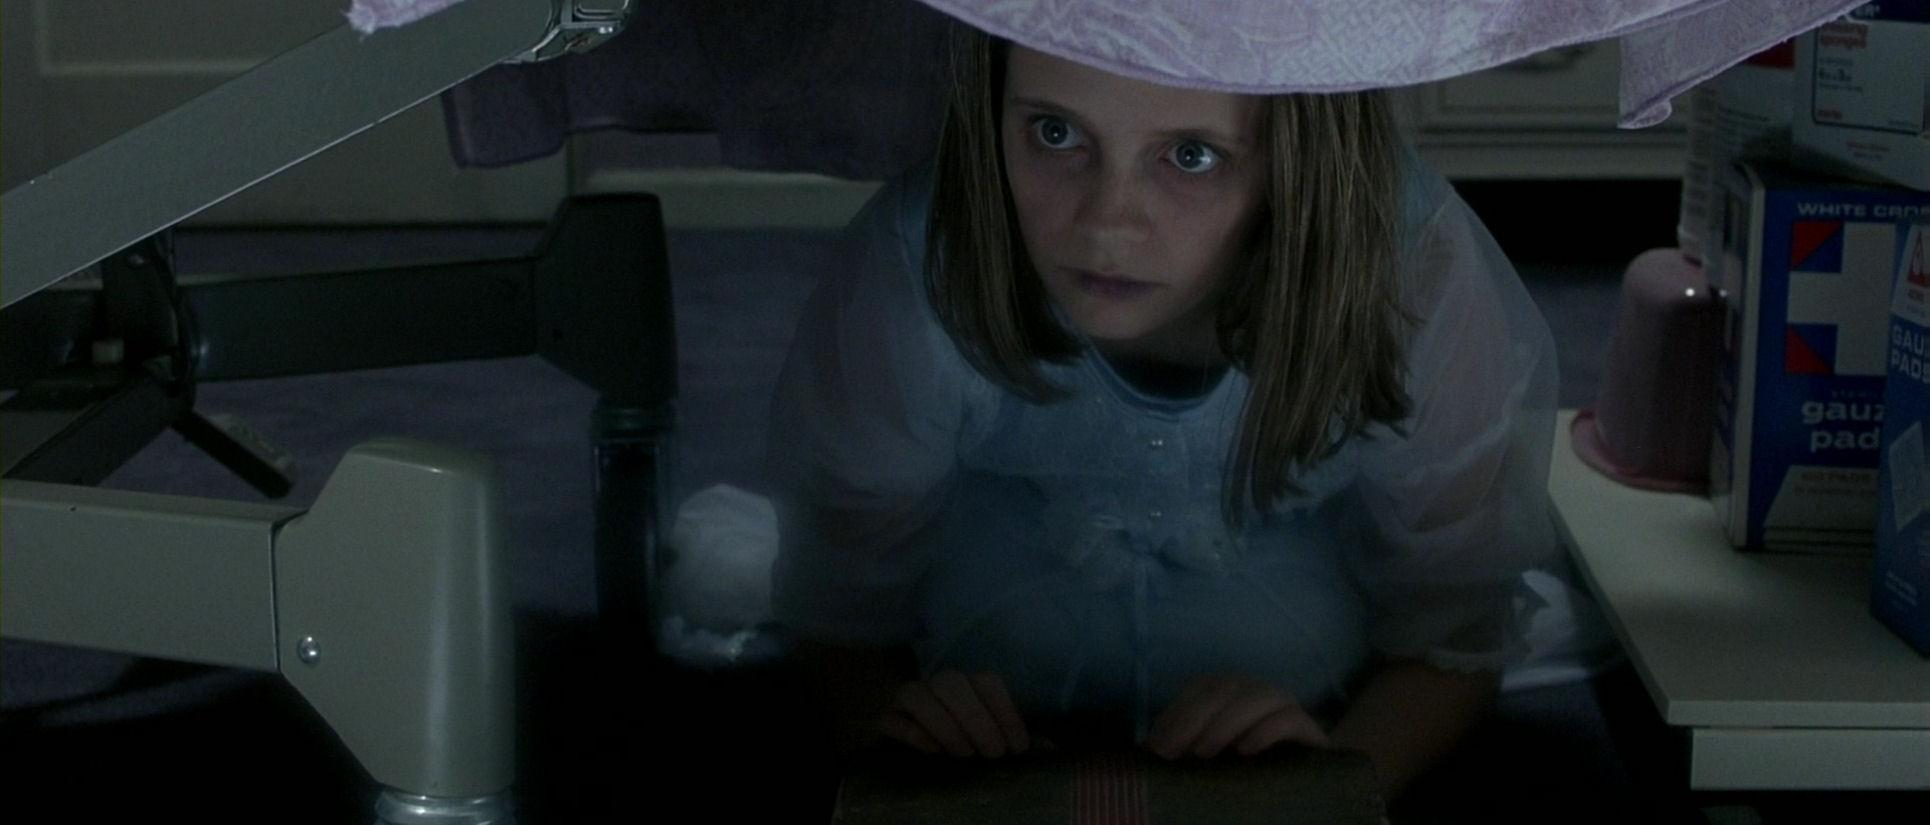 The Sixth Sense wallpapers, Movie, HQ The Sixth Sense pictures